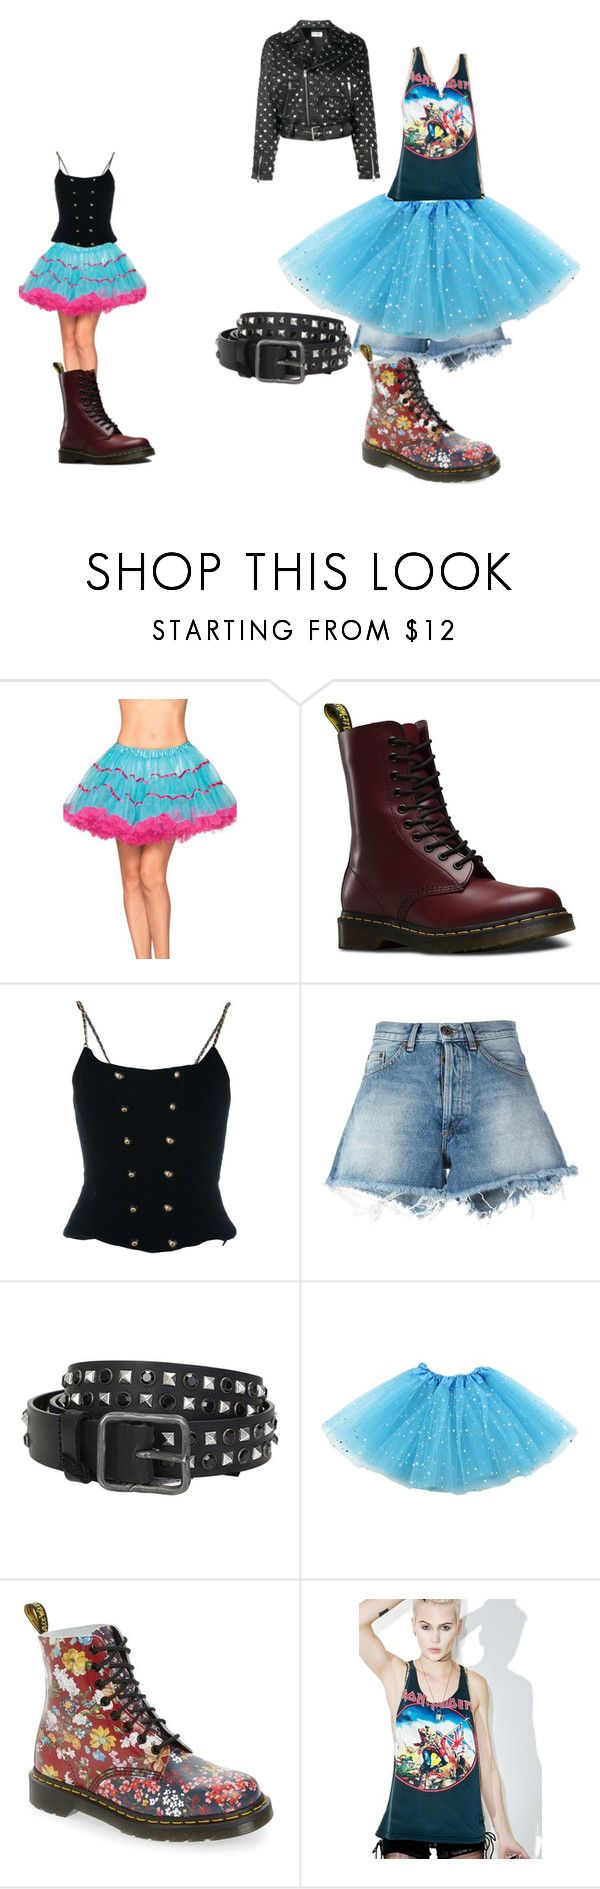 """Columbia options Rocky Horror Picture Show 2016"" by musicallovemagic ❤ liked on Polyvore featuring Dr. Martens, Chanel, Off-White, Dsquared2, Hazmat Design and Yves Saint Laurent"